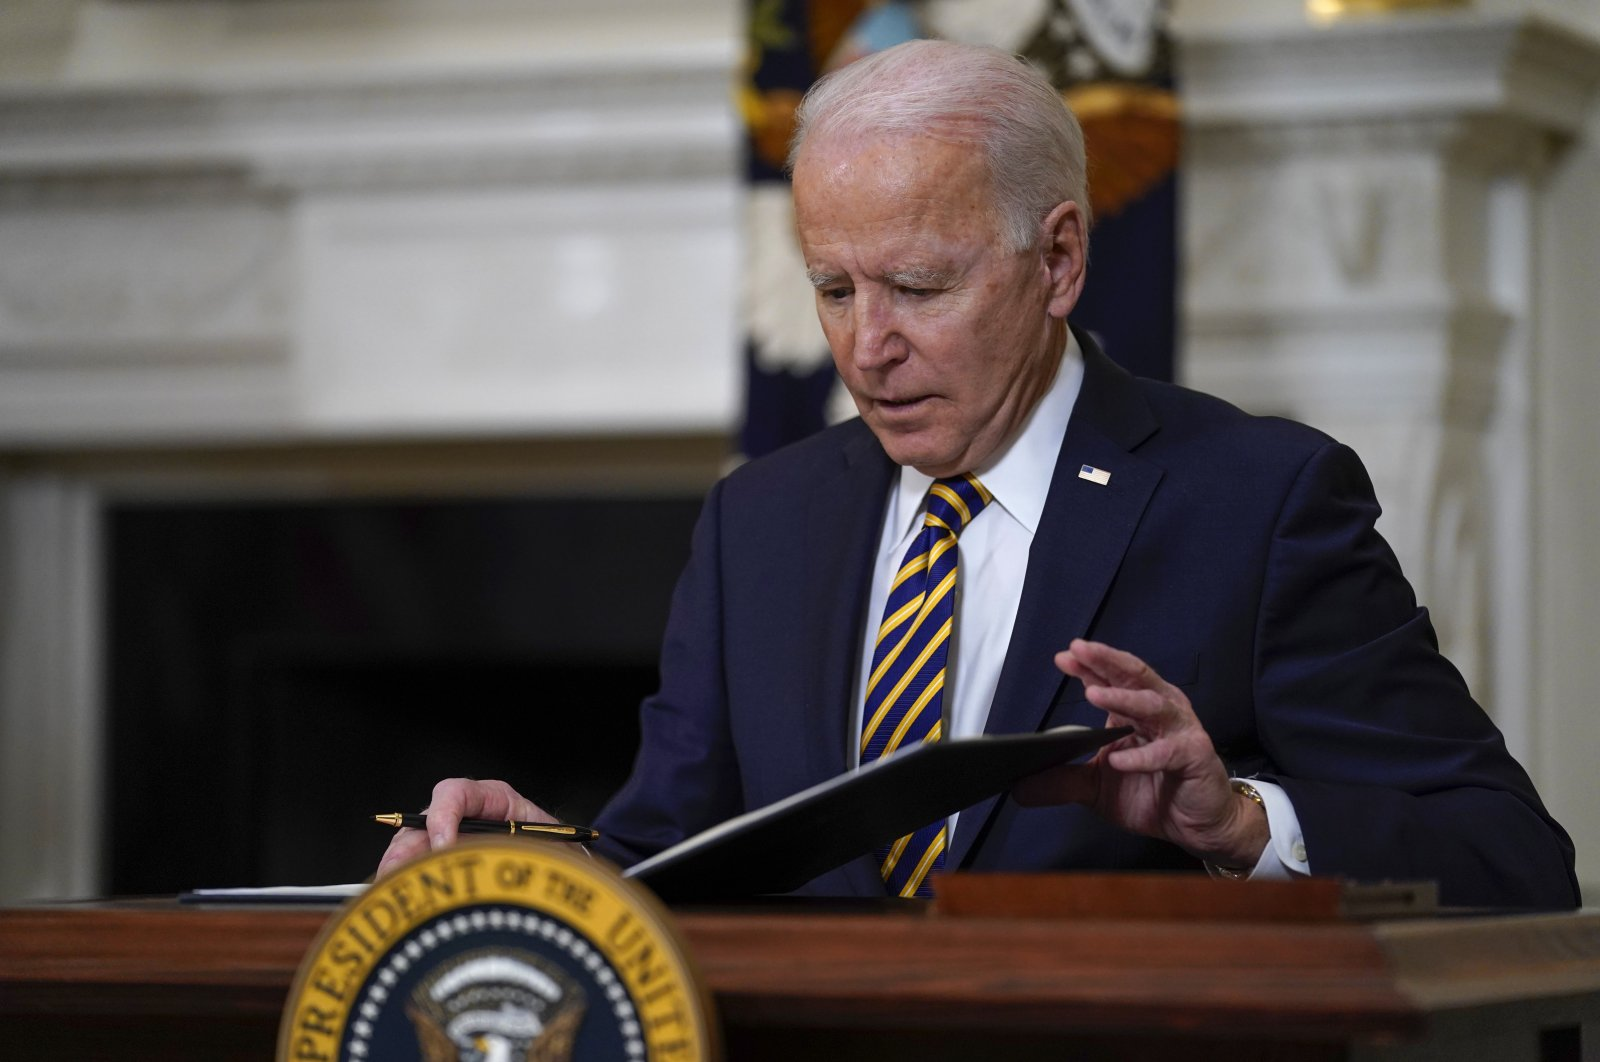 President Joe Biden closes a folder after signing an executive order relating to U.S. supply chains, in the State Dining Room of the White House, Washington, D.C., the U.S, Feb. 24, 2021. (AP Photo)